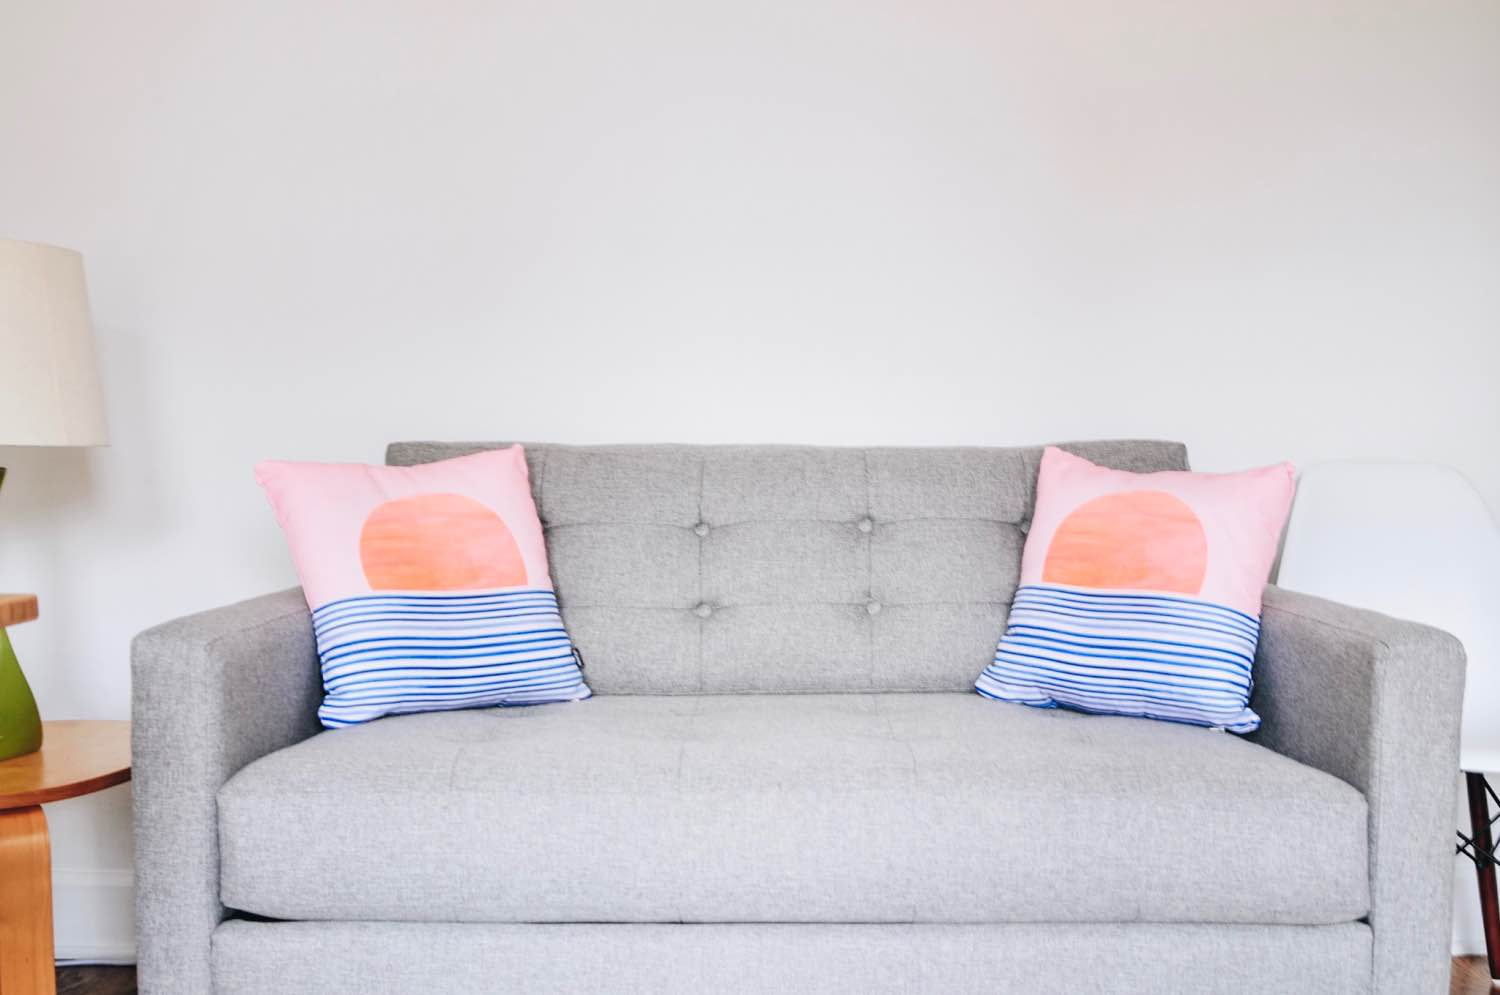 after adding pillows from society6 home decor